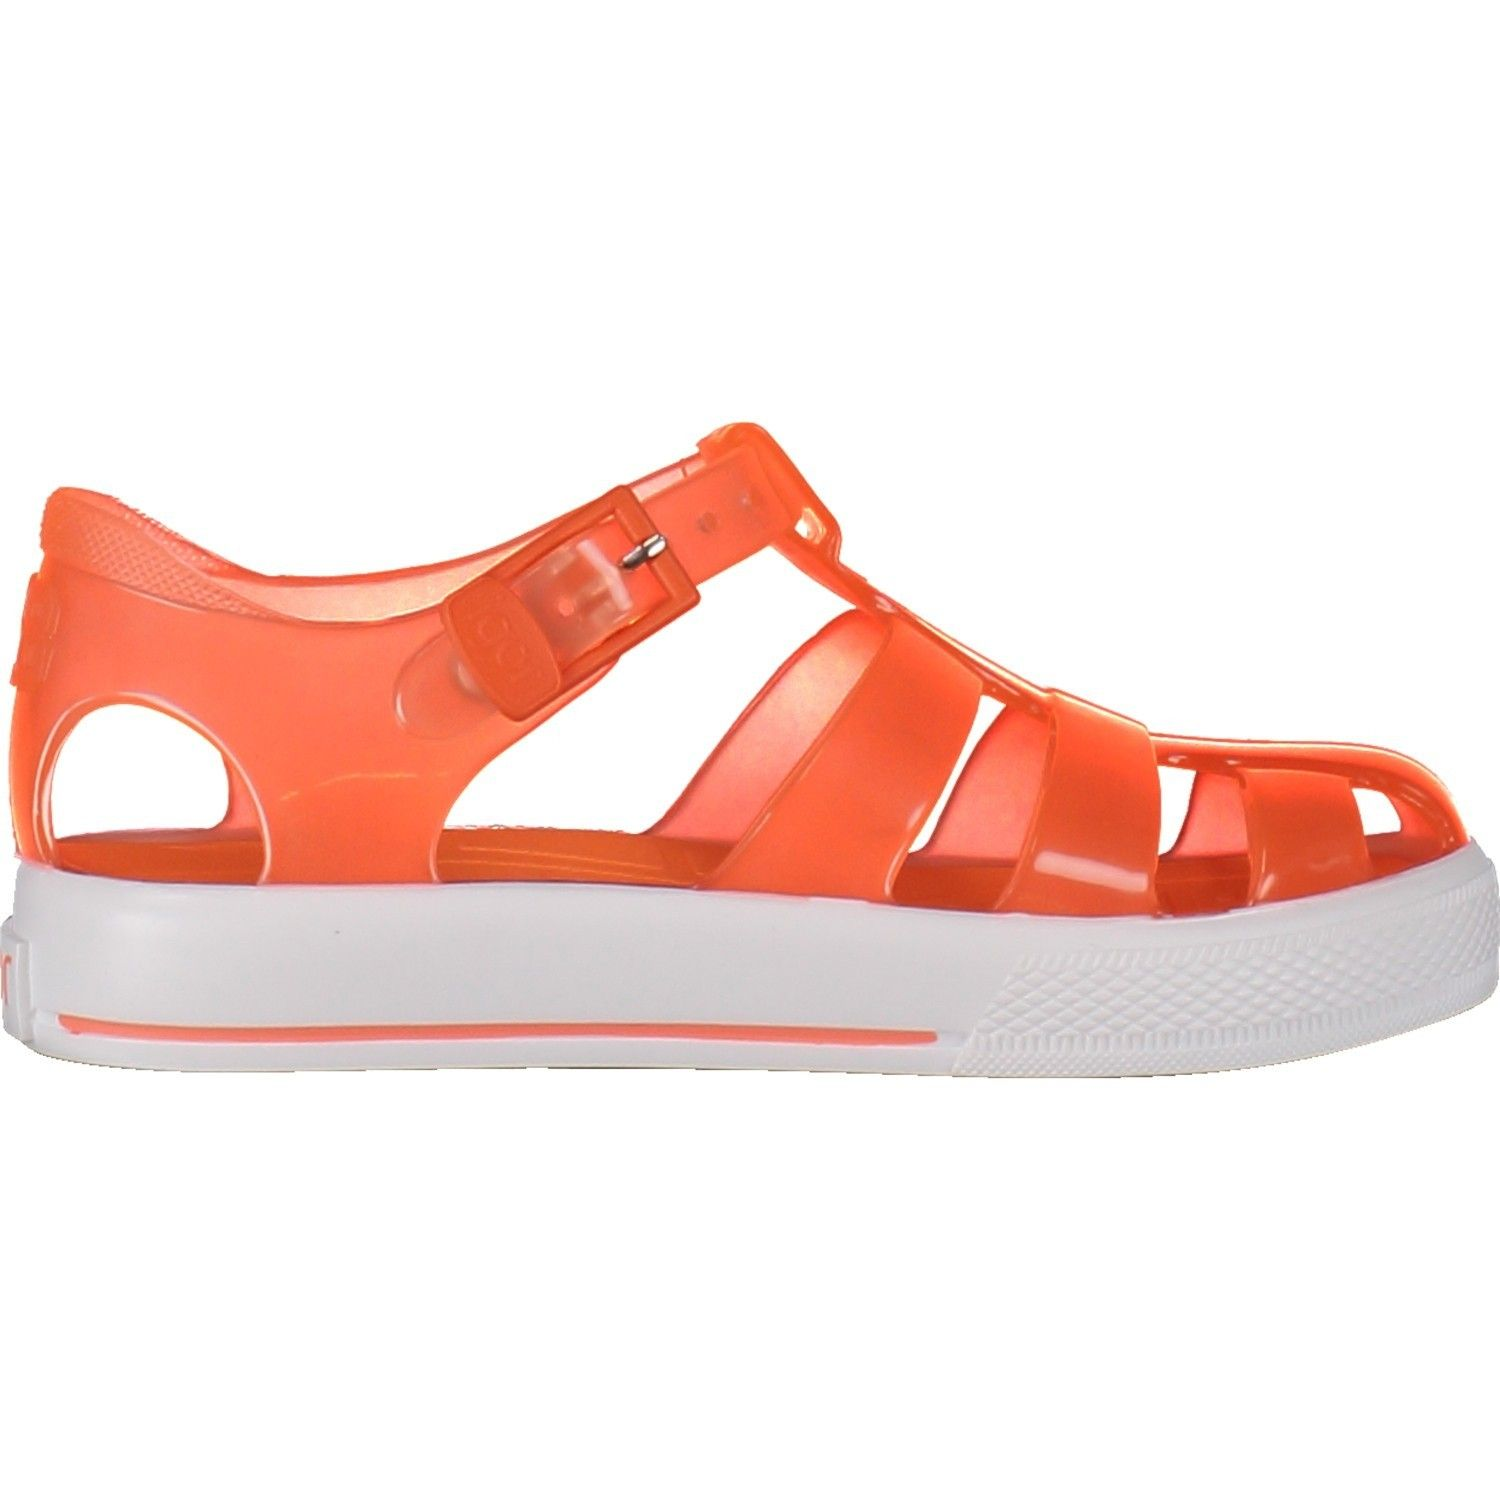 Picture of Igor S10107 kids sandals orange